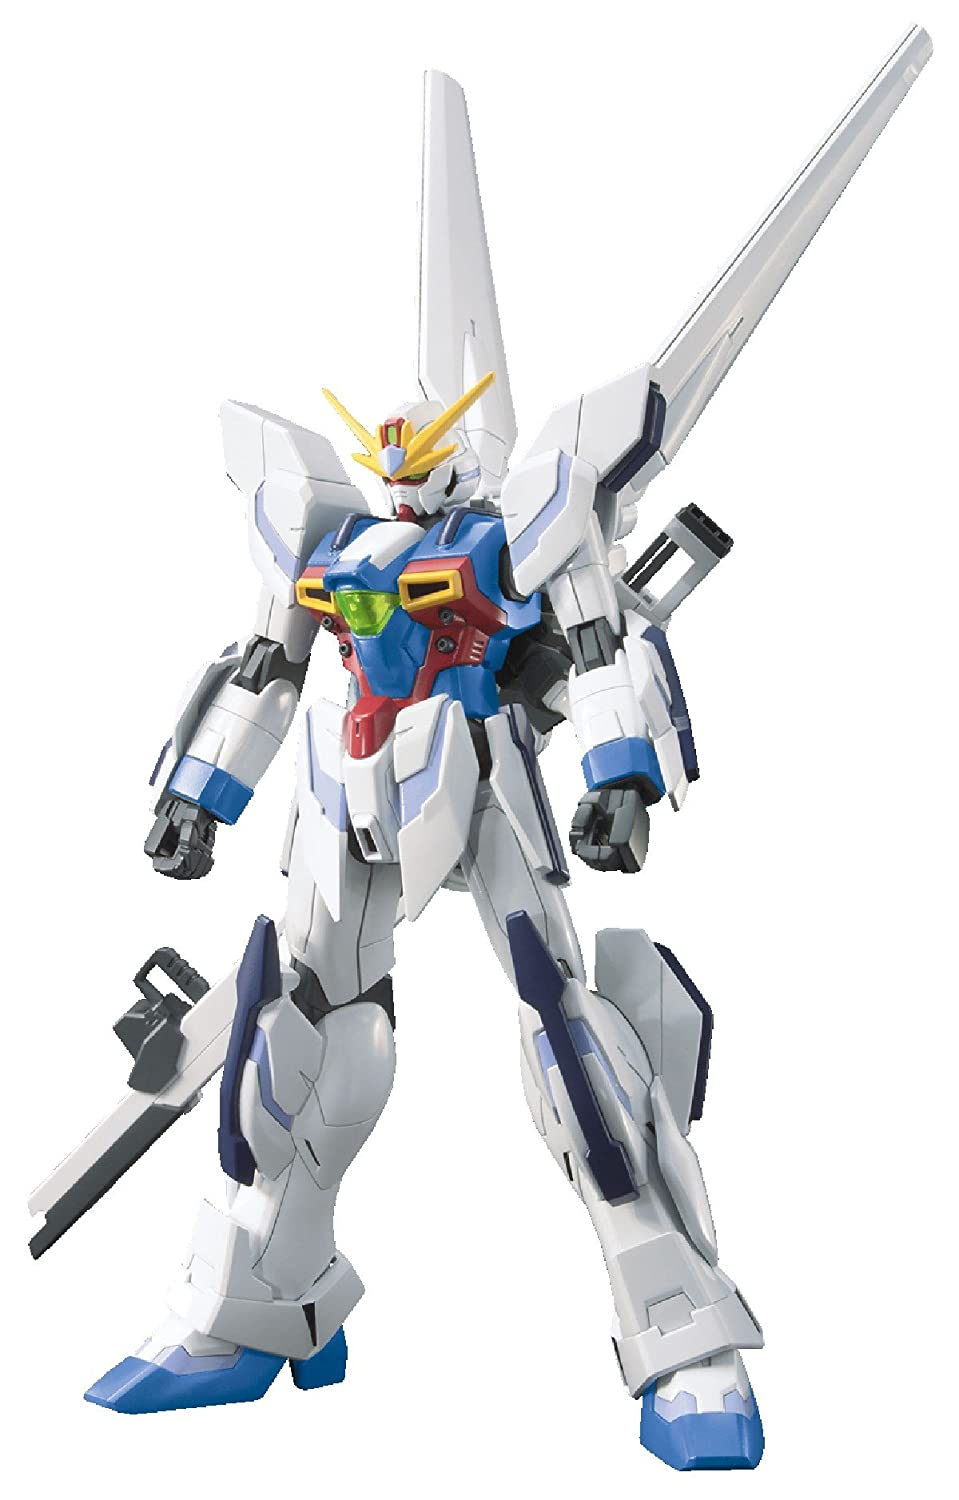 Bandai Hobby #03 HGBF Gundam X Maoh Model Kit (1/144 Scale) charles tapiero s risk finance and asset pricing value measurements and markets